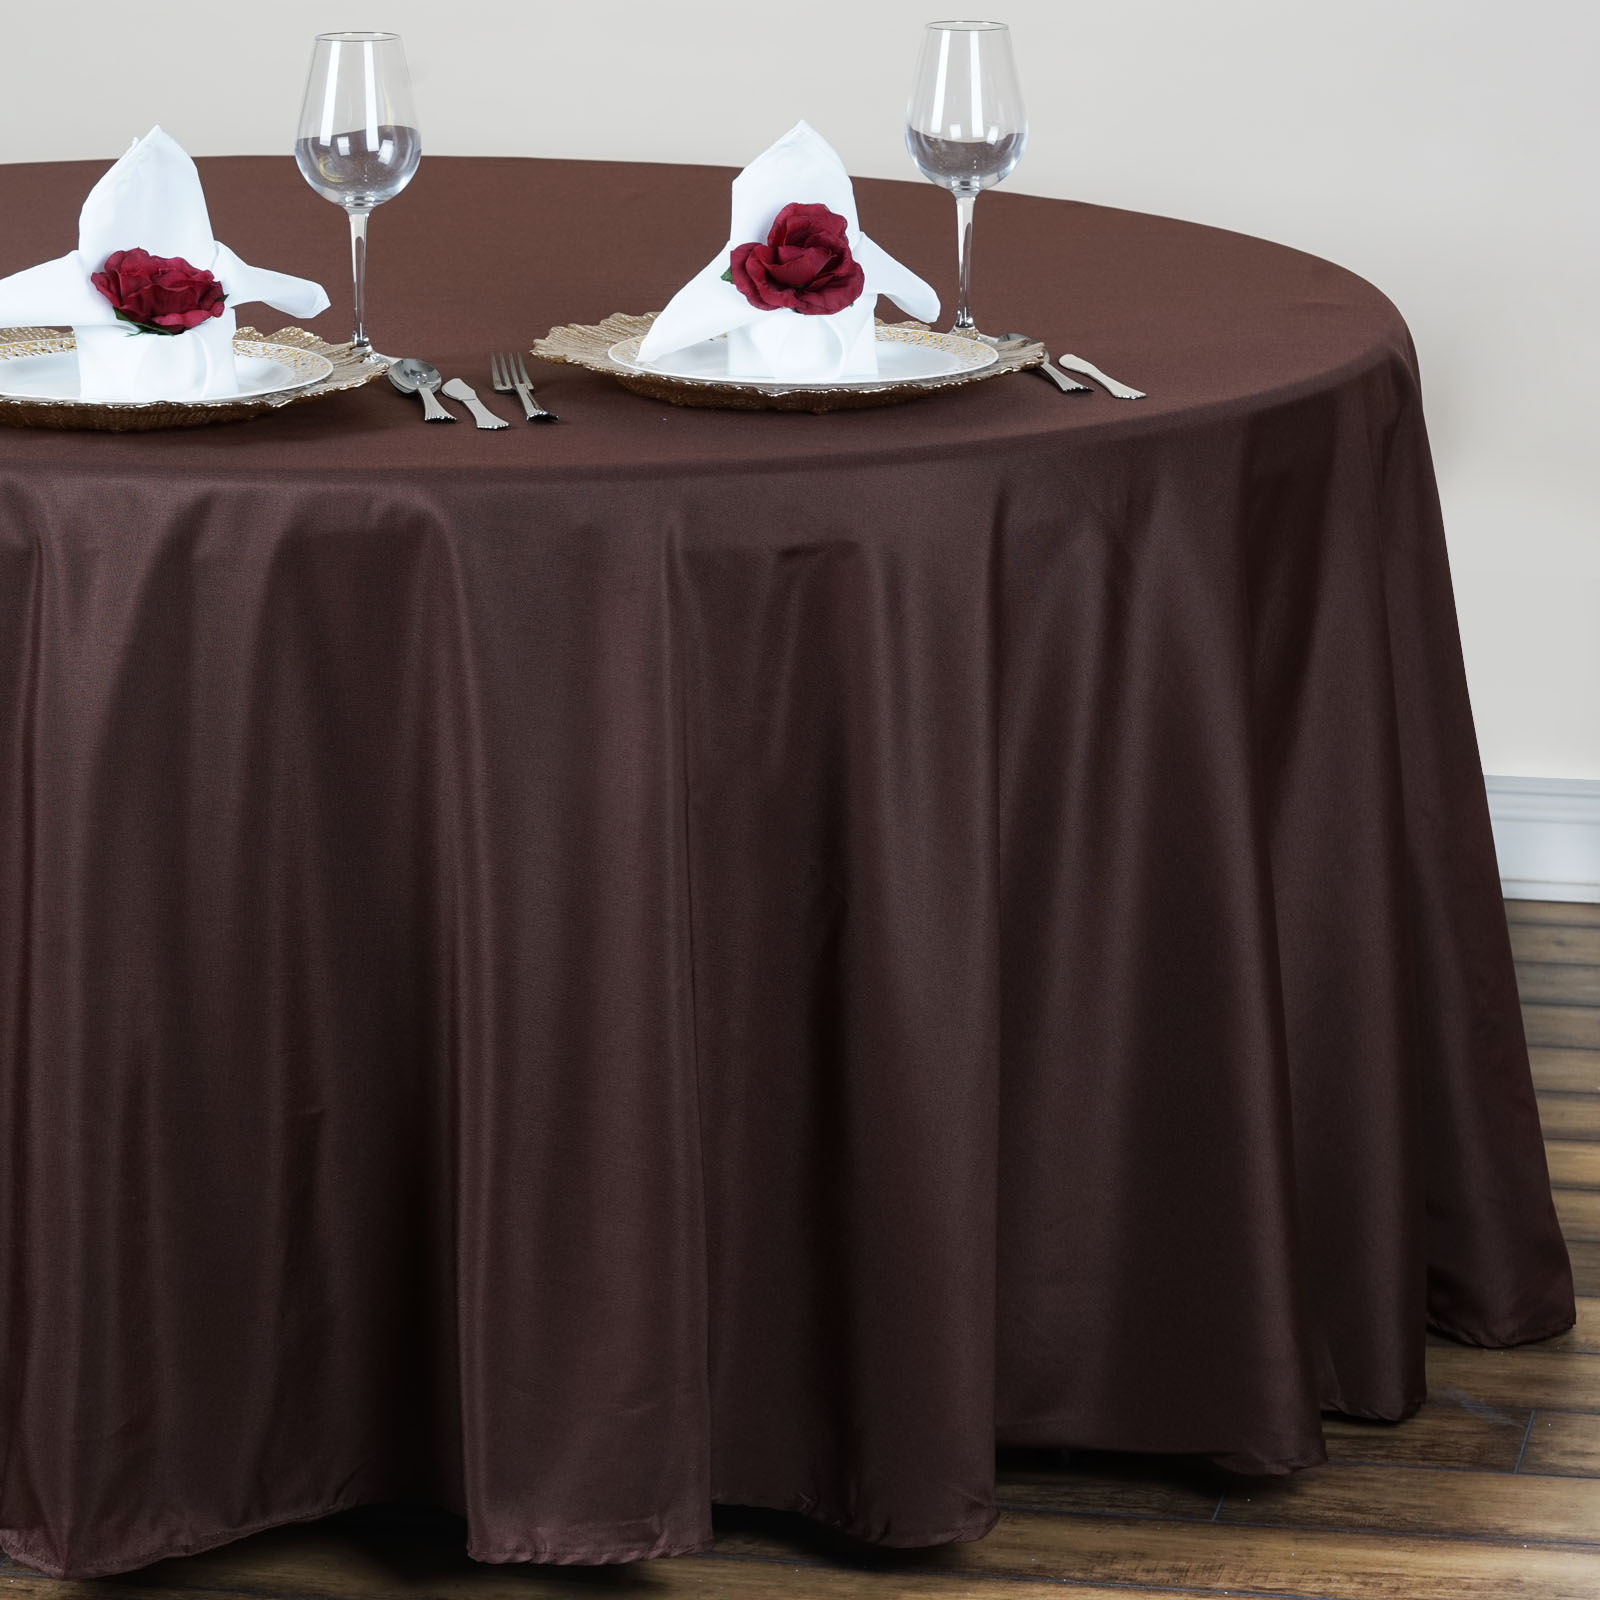 15 pcs Wholesale Lot 120quot ROUND POLYESTER TABLECLOTHS Fine  : tab120ch0c02 from www.ebay.com size 1600 x 1600 jpeg 241kB